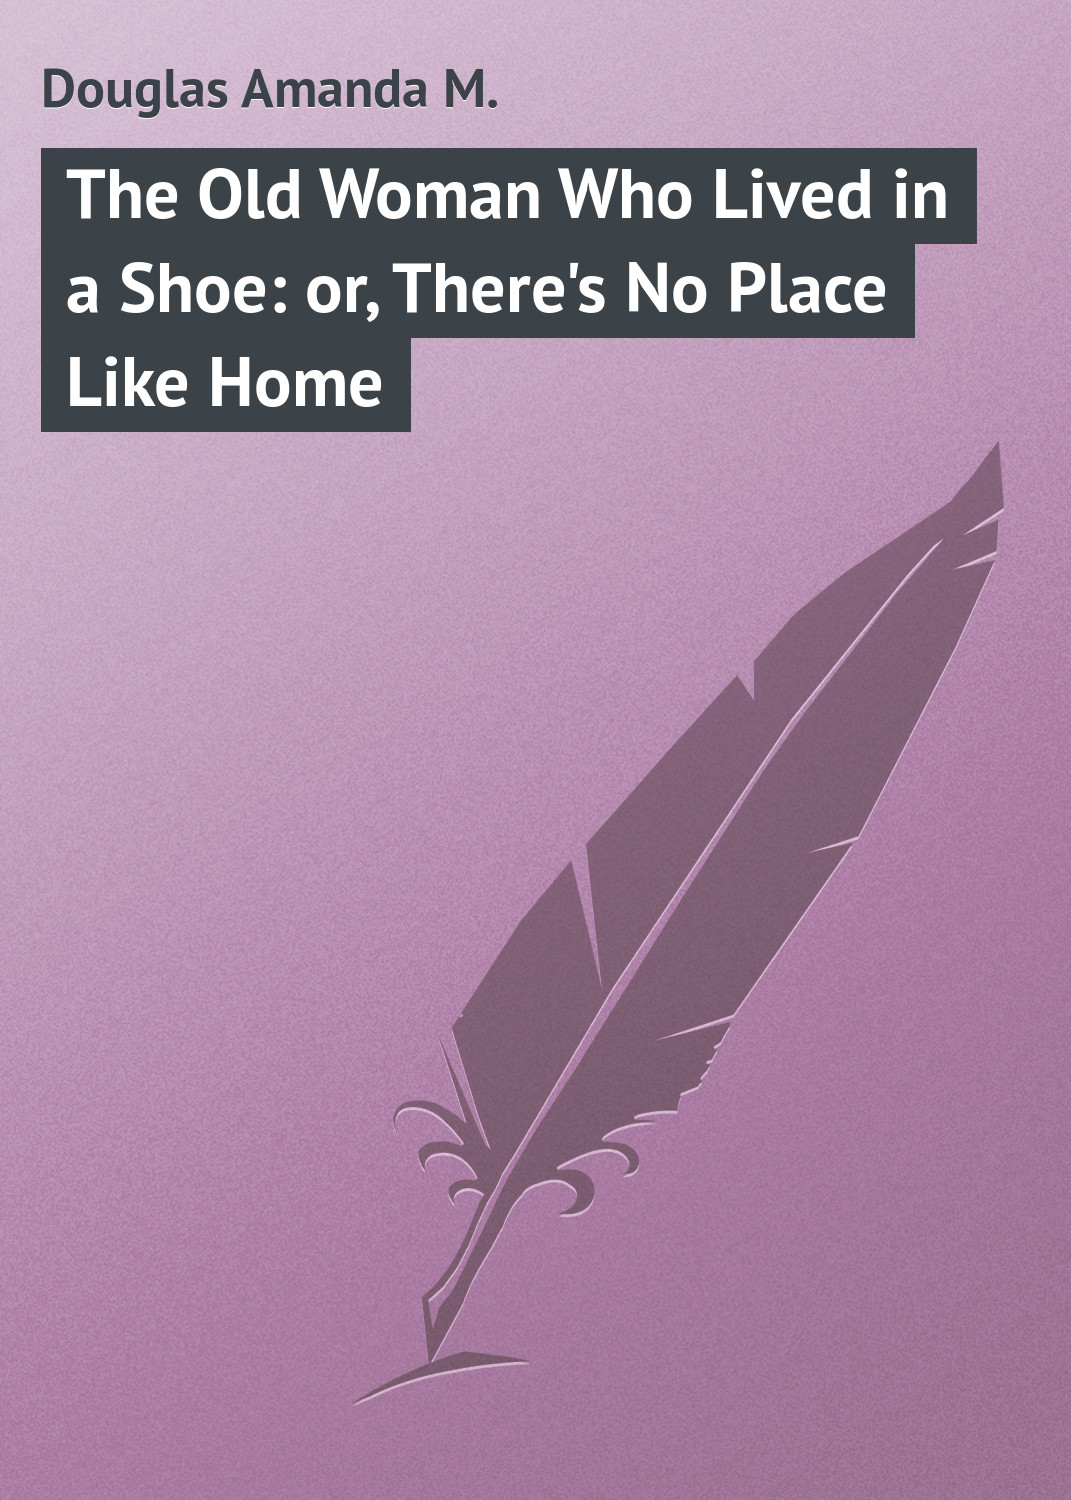 лучшая цена Douglas Amanda M. The Old Woman Who Lived in a Shoe: or, There's No Place Like Home